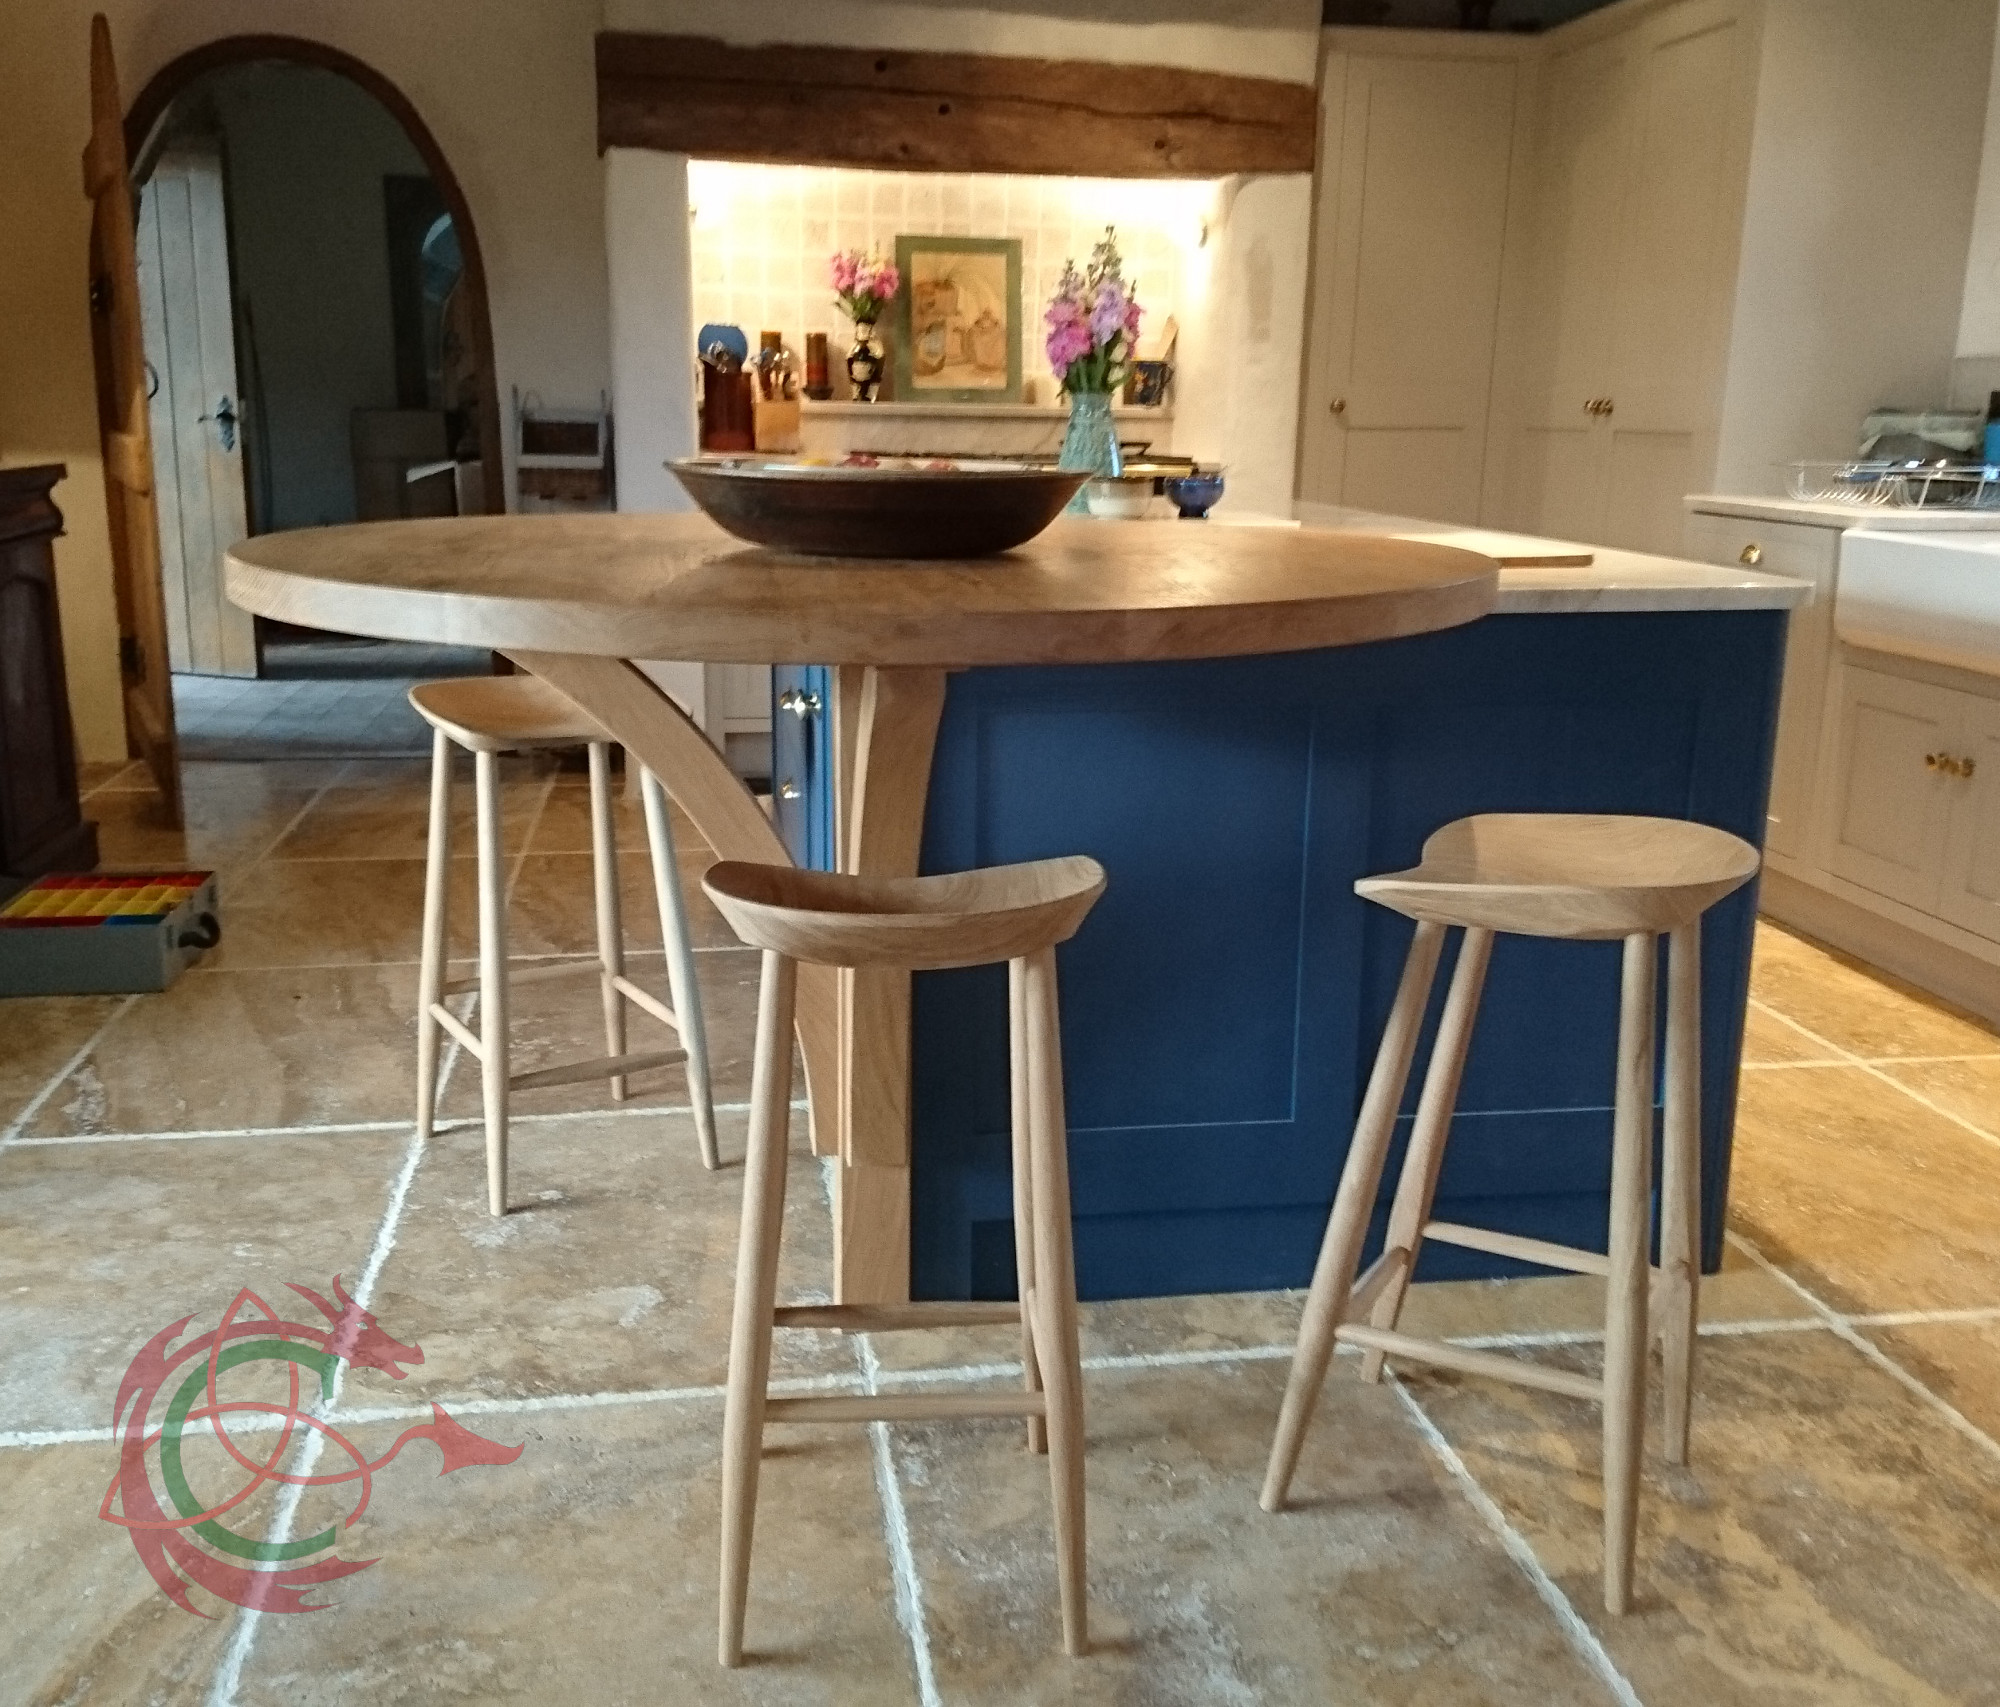 Kitchen Gallery Solihull: Breakfast Bar In West Wales Barn Conversion 0394